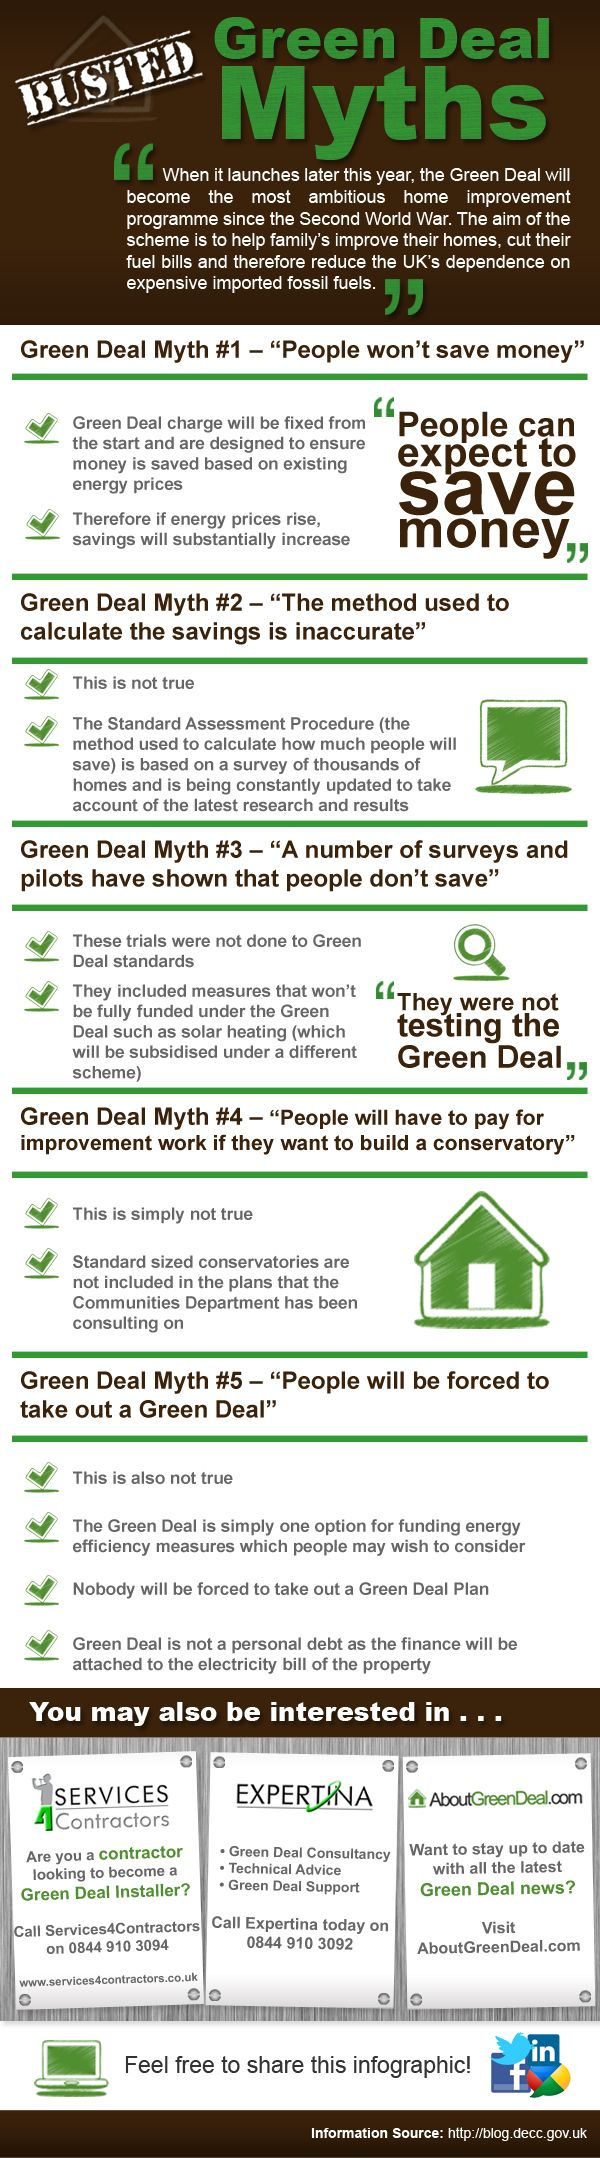 n infographic explaining the most popular 'Green Deal Myths' about the Green Deal Scheme!